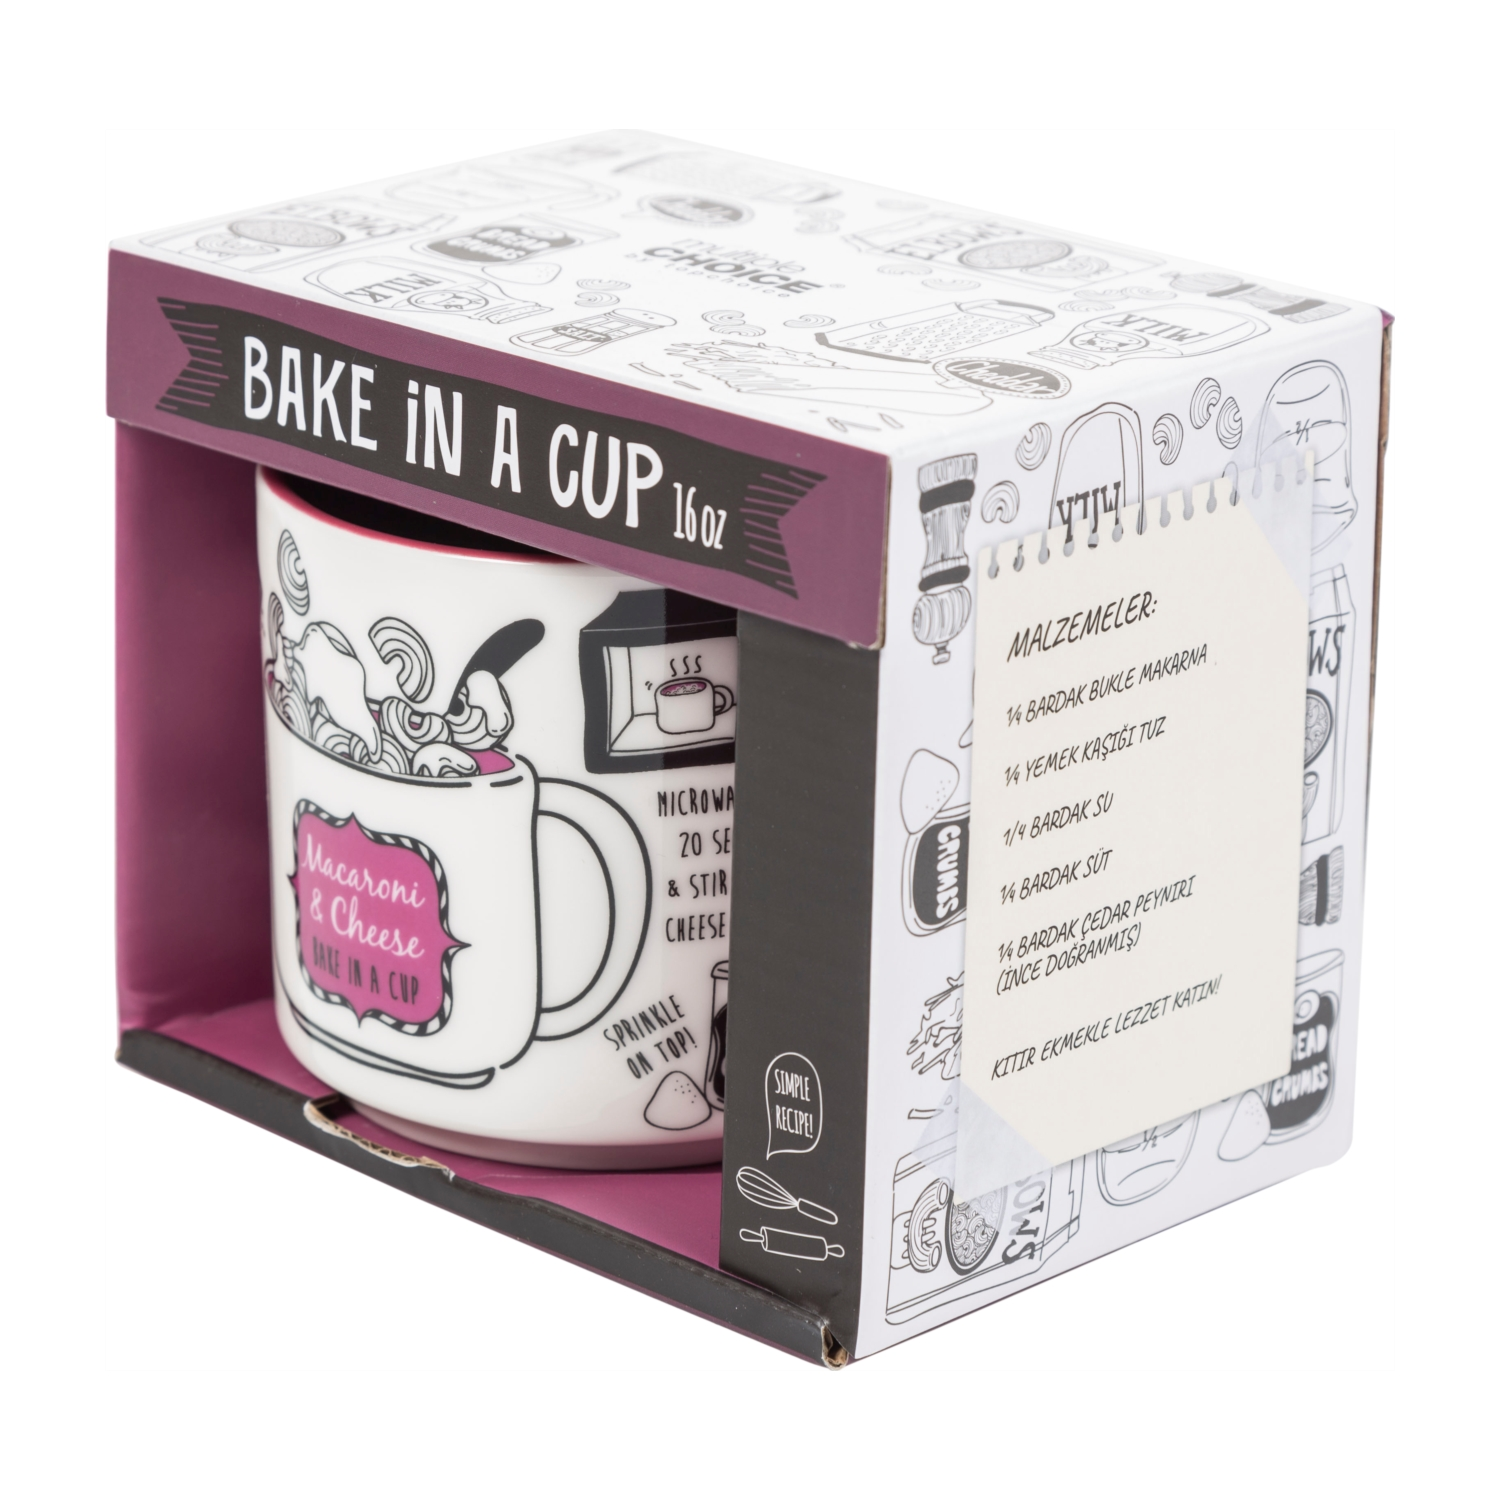 BAKE IN A CUP - 380 ML